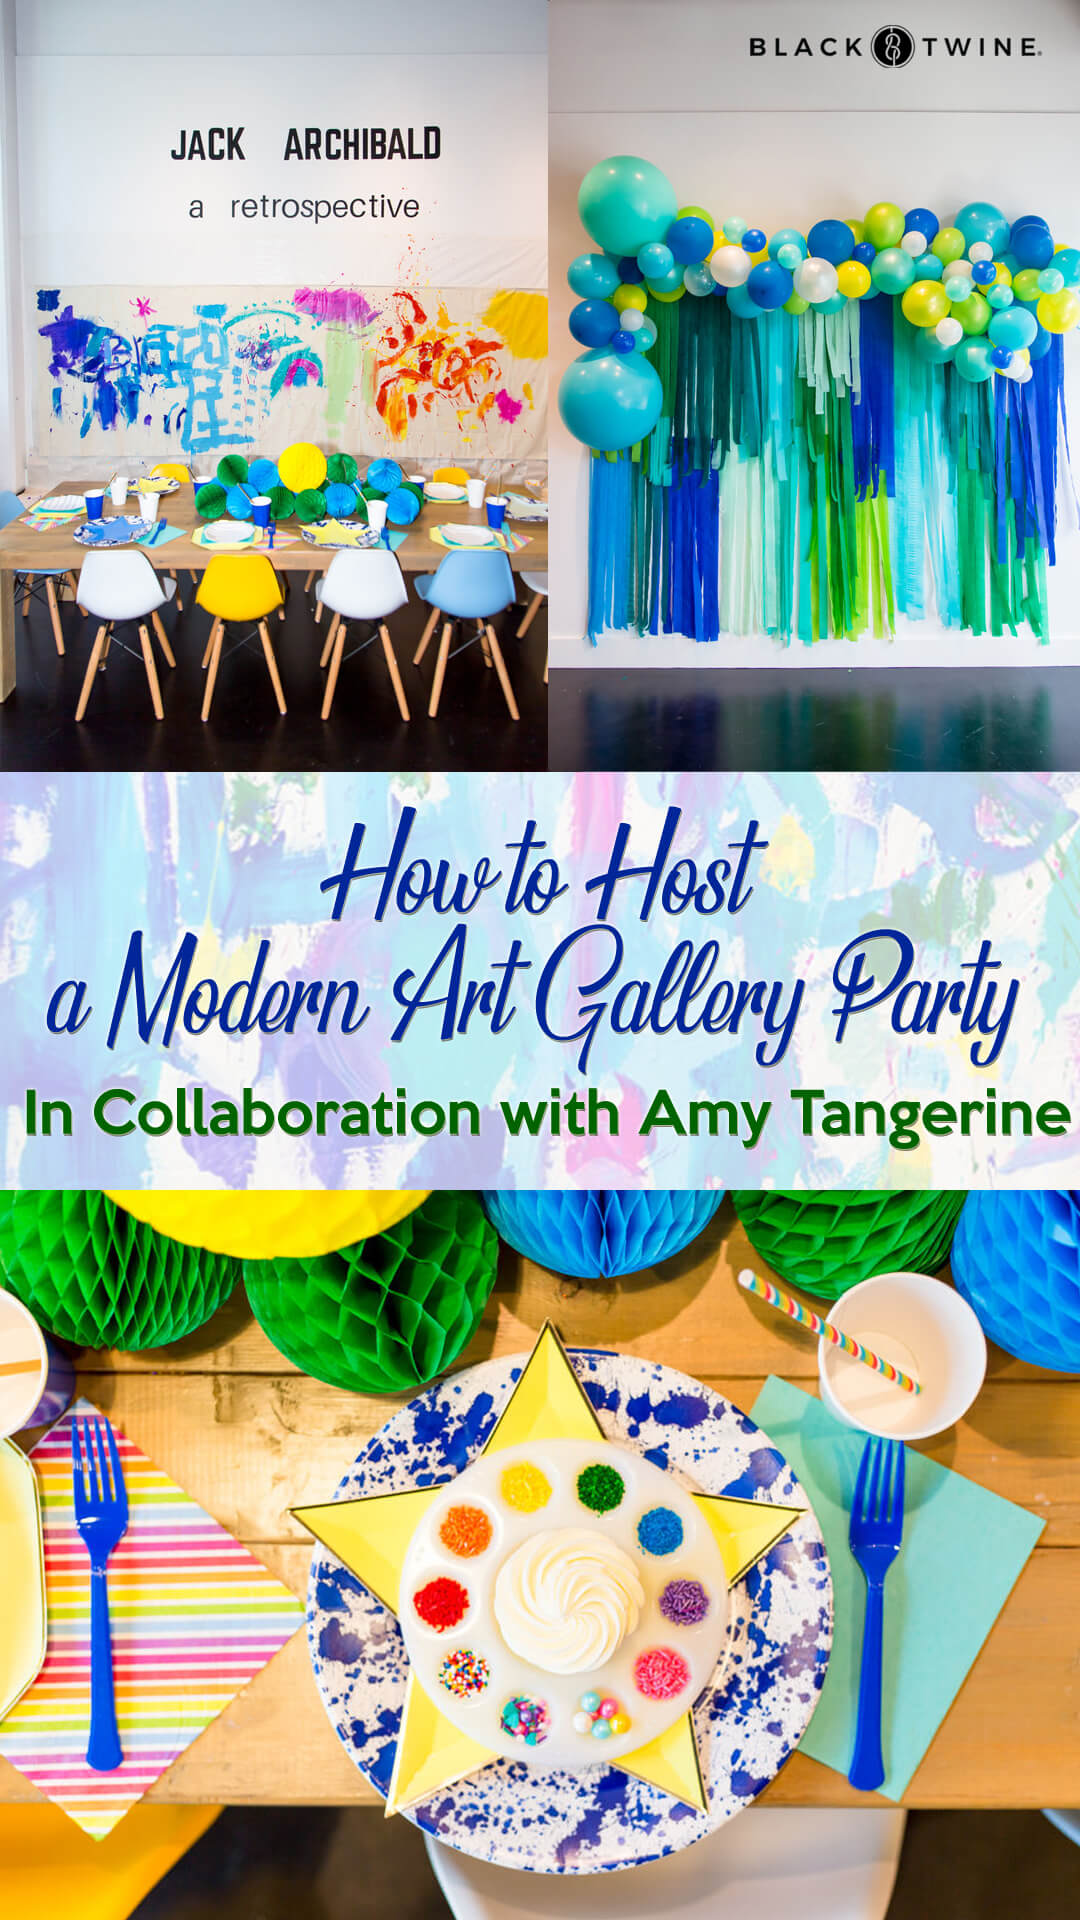 Tablescape, Place Setting and Balloon Garland from Modern Art Gallery Party In Collaboration with Amy Tangerine | Black Twine